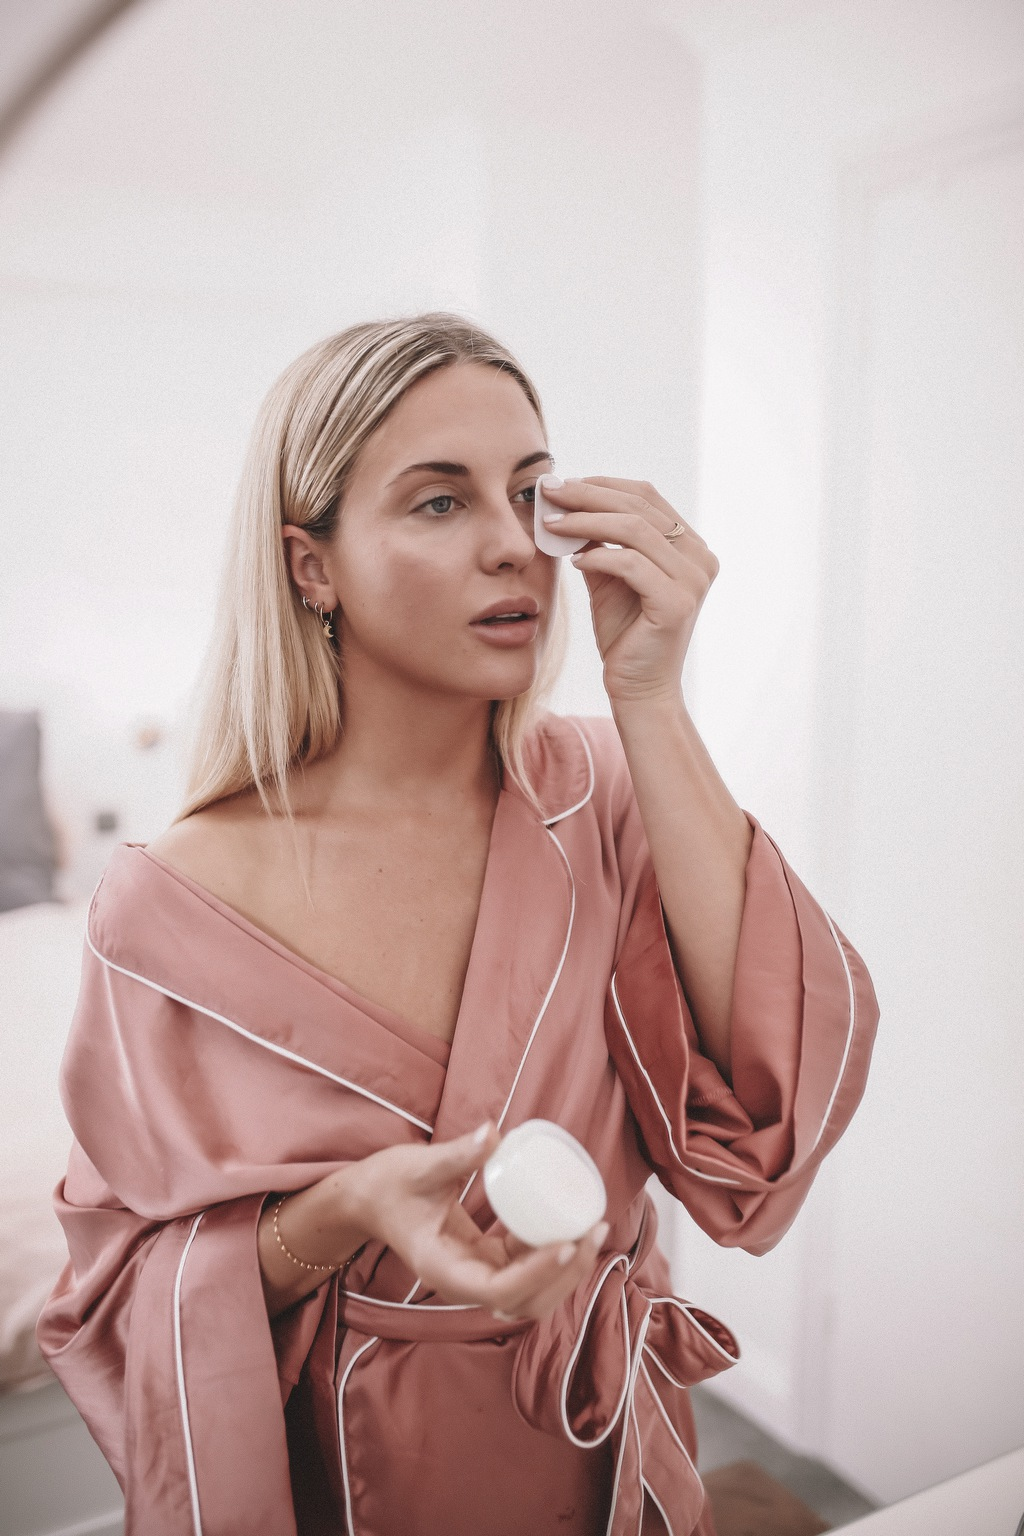 TESTING TESTING: MY TEENAGE SKINCARE HERO GETS A MAKEOVER